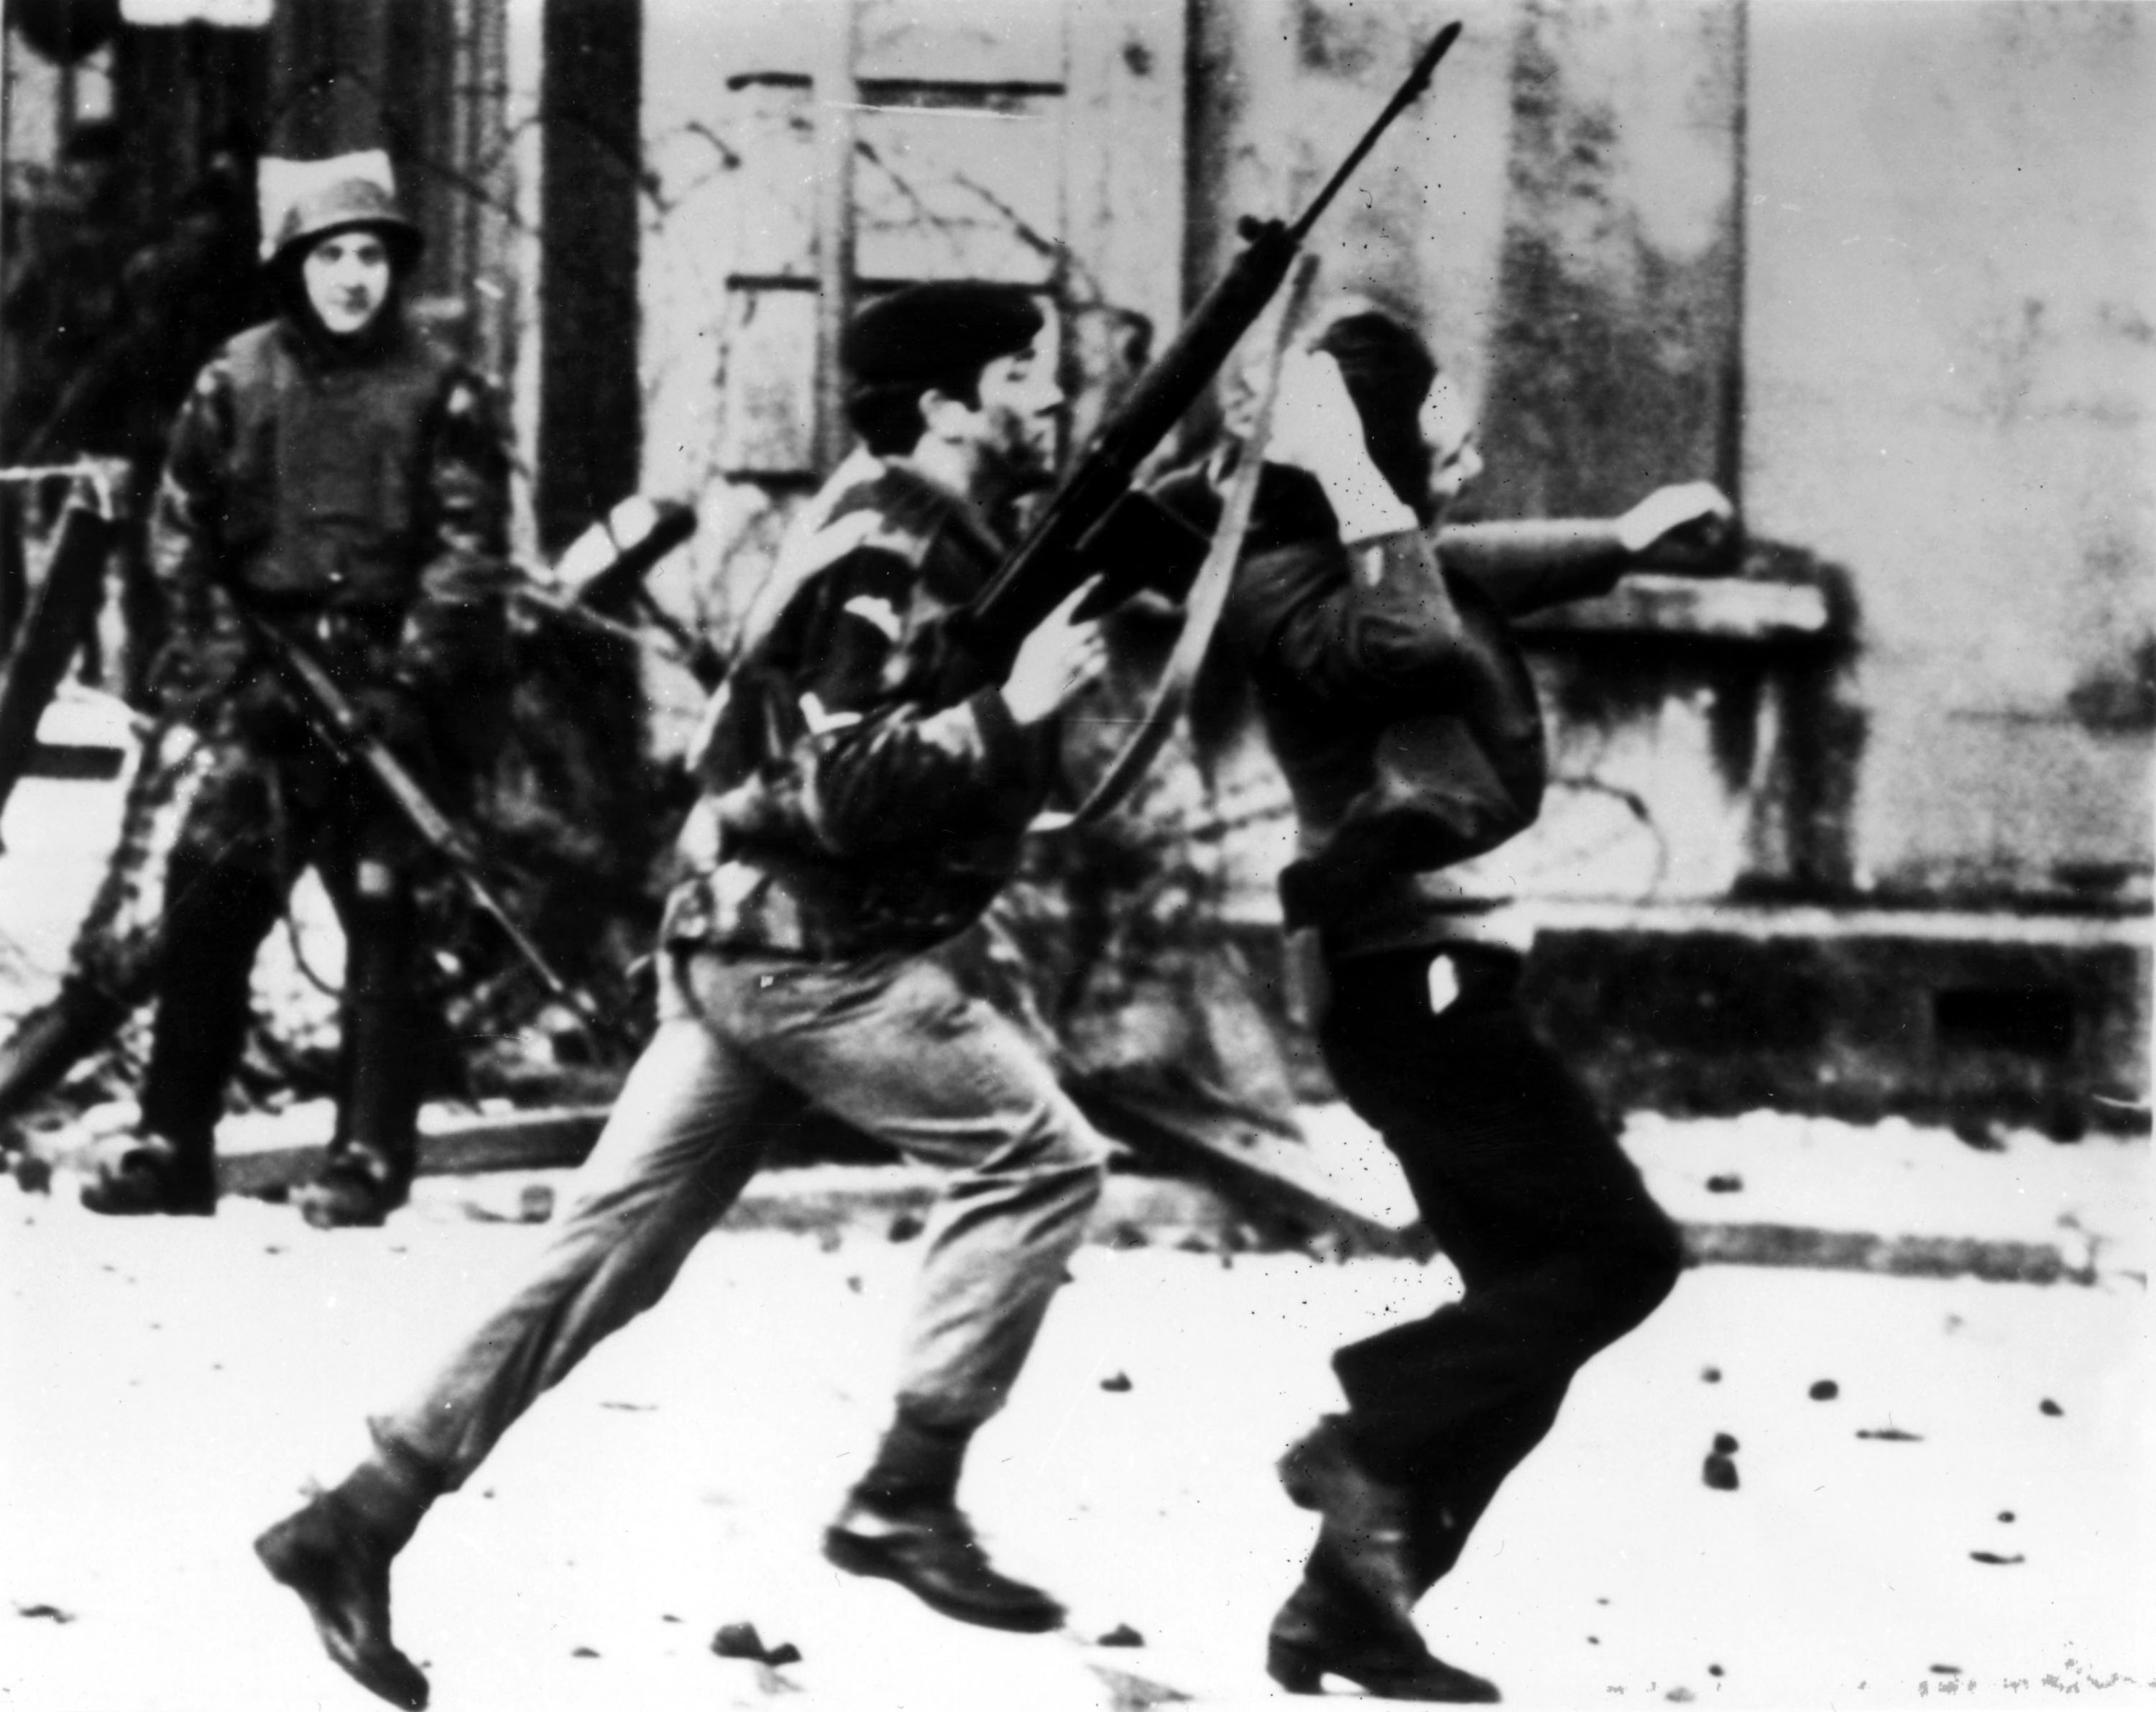 """400345 02: A British paratrooper takes a captured youth from the crowd on """"Bloody Sunday,"""" when British paratroopers opened fire on a civil rights march, killing 14 civilians, January 30, 1972 in Londonderry, Northern Ireland. Thousands of people are expected to take part in events to mark the 30th anniversary of """"Bloody Sunday"""" February 3, 2002 in Londonderry. (Photo by Getty Images)"""